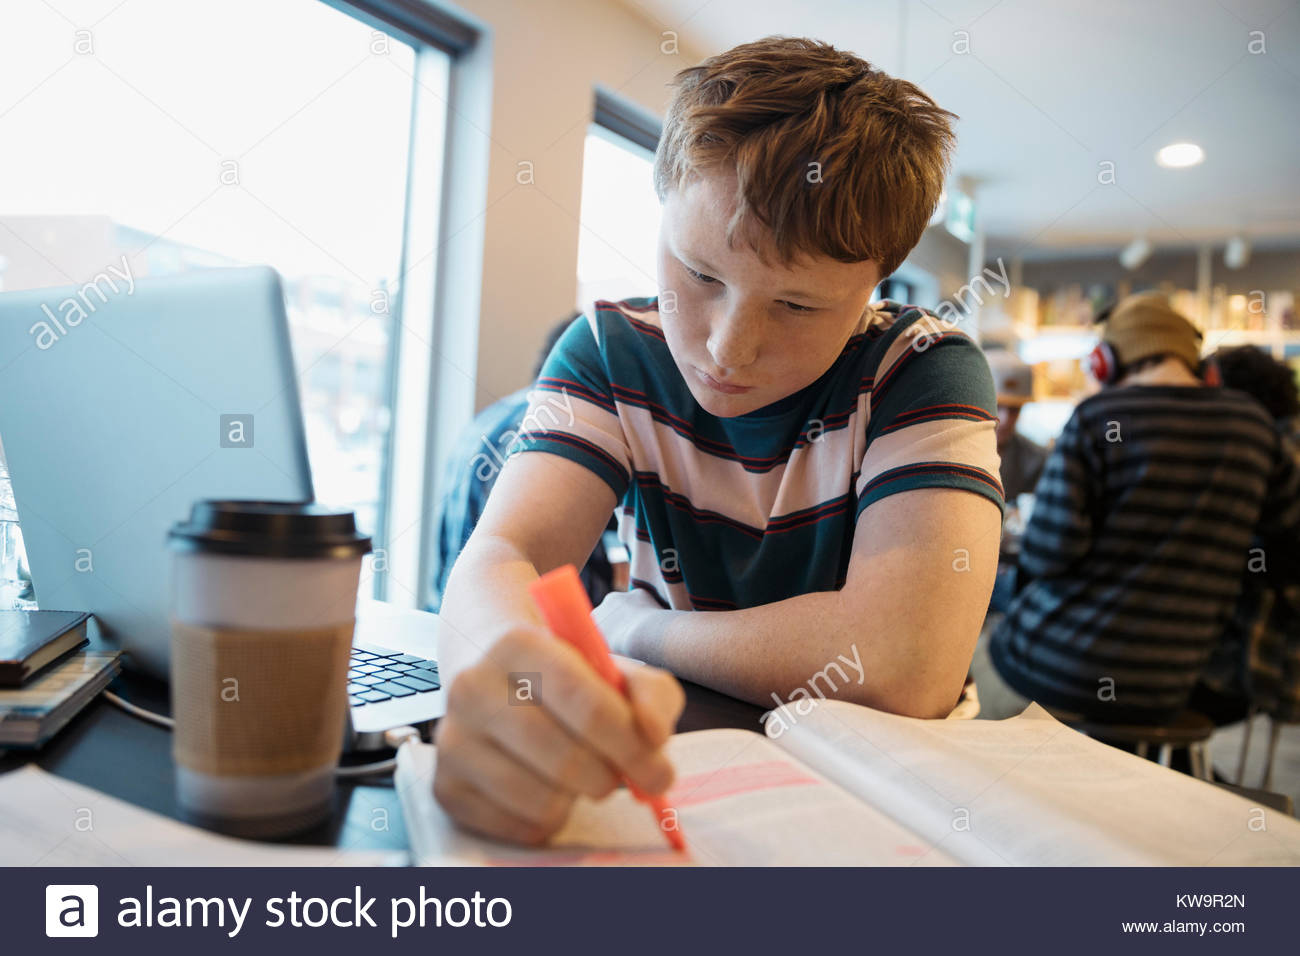 Serious high school boy student studying at laptop,highlighting textbook in cafe - Stock Image